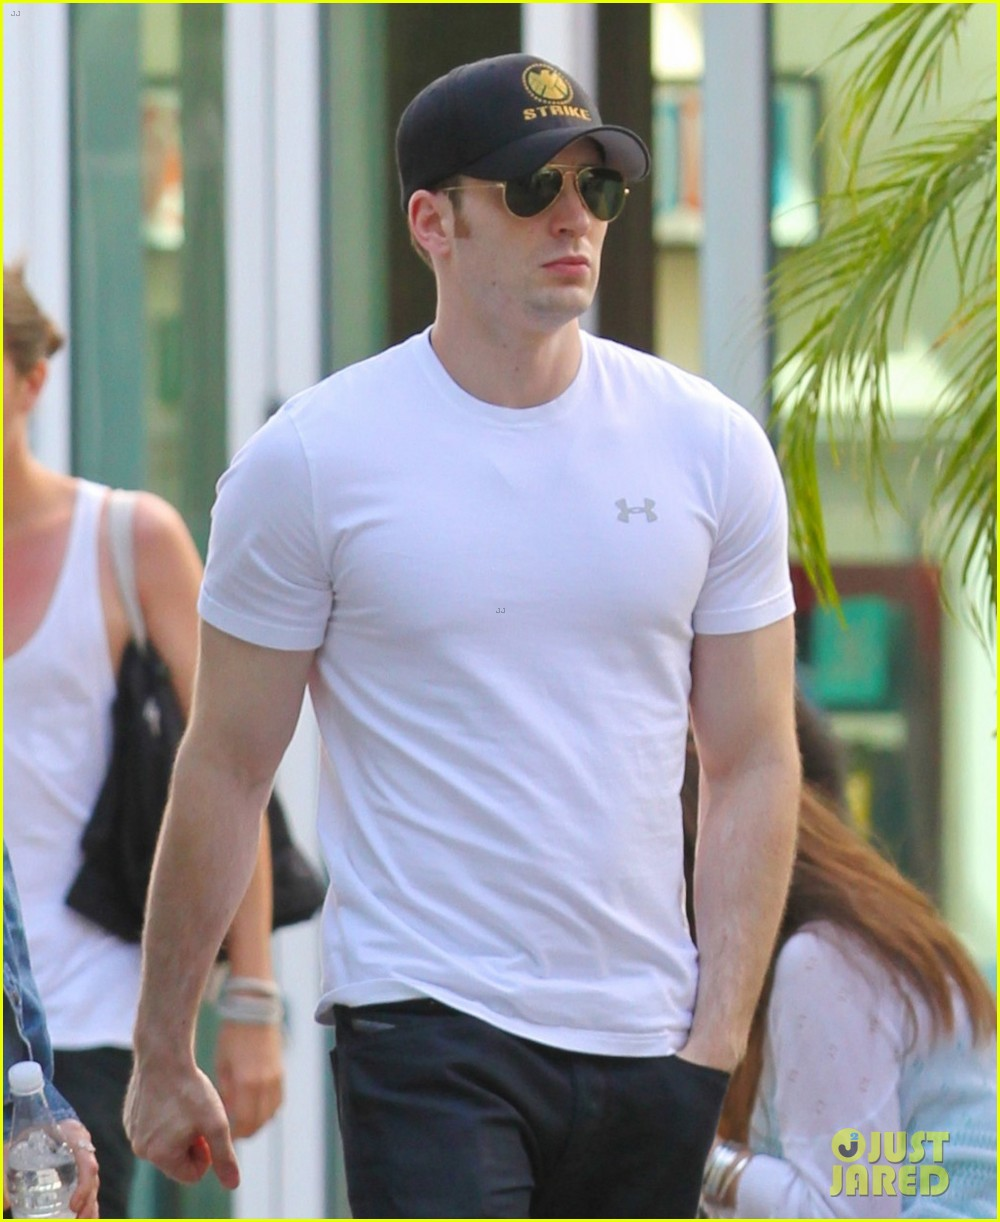 minka kelly grabs chris evans chest at the movies 052904765